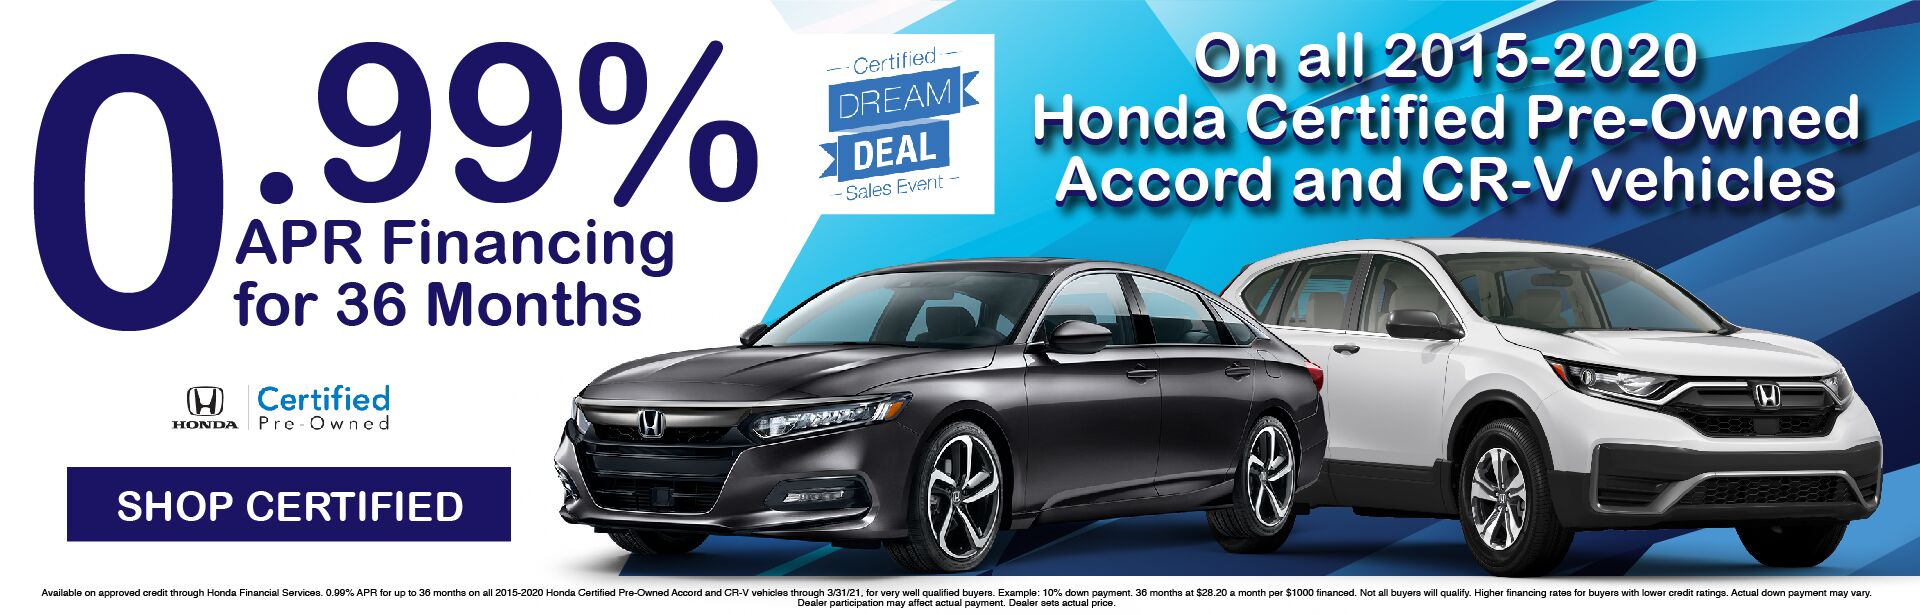 Certified Pre-Owned Civic .99% APR x 36